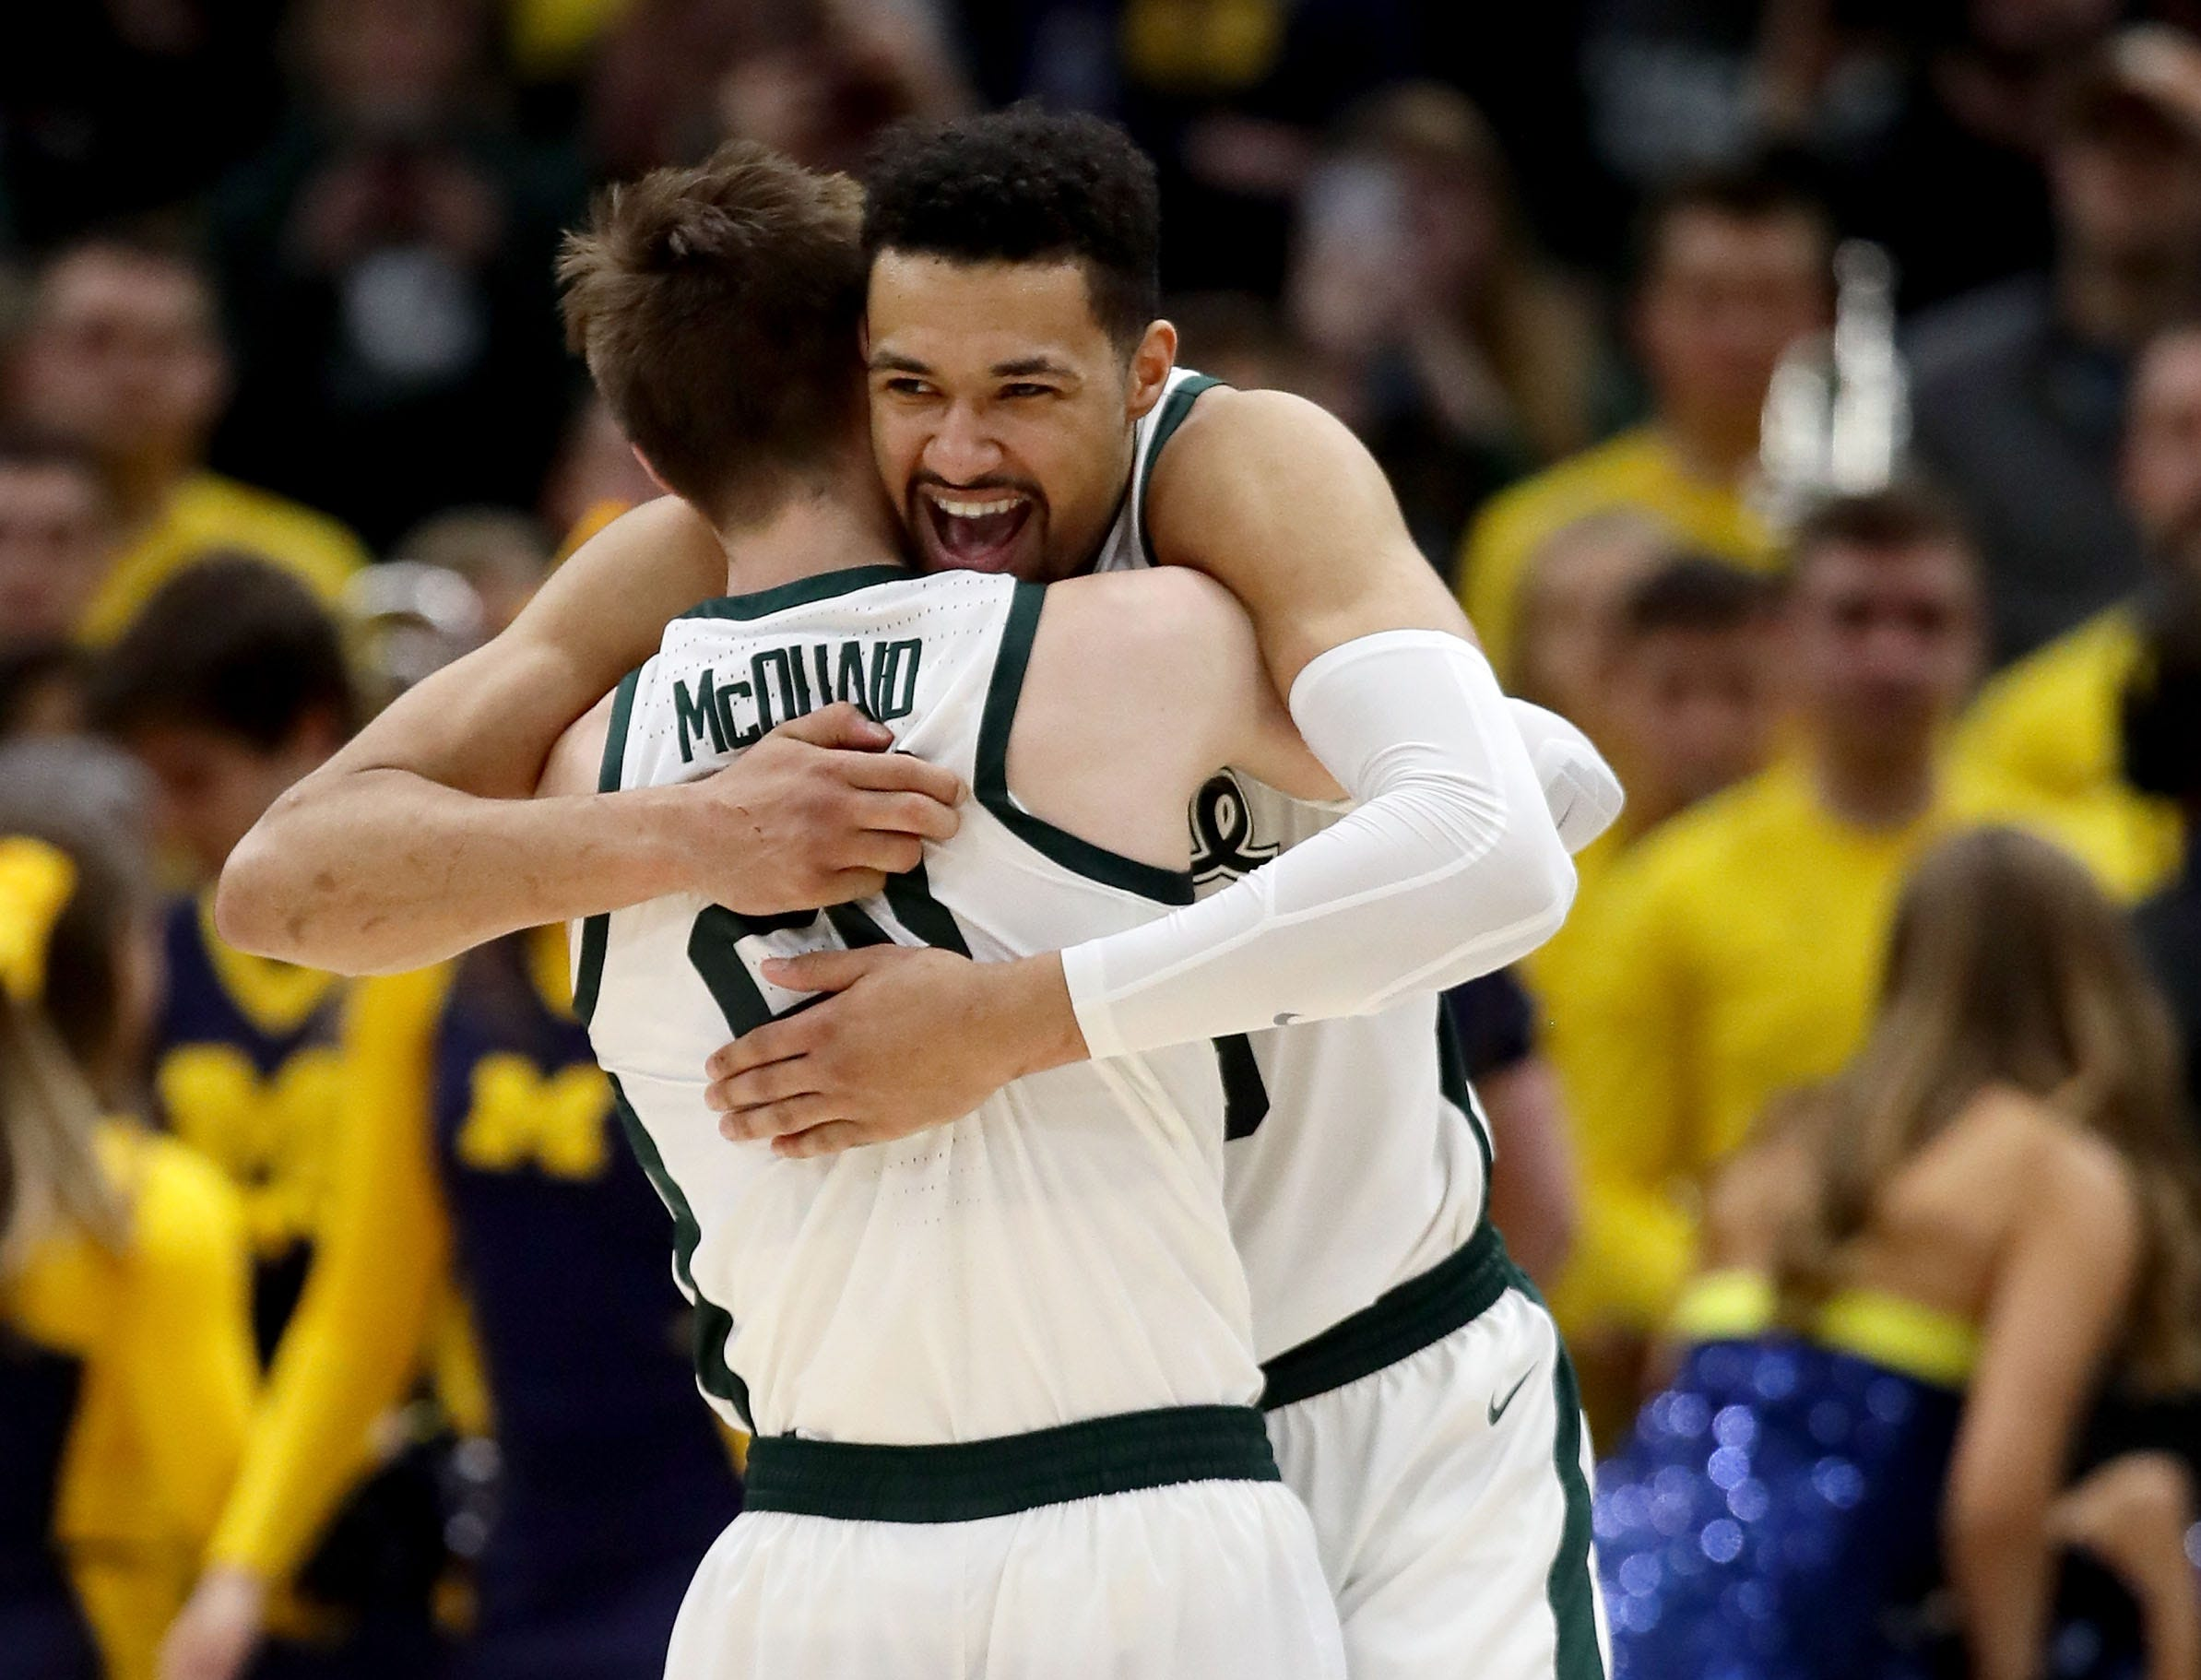 CHICAGO, ILLINOIS - MARCH 17:  Matt McQuaid #20 and Kenny Goins #25 of the Michigan State Spartans celebrate in the second half against the Michigan Wolverines during the championship game of the Big Ten Basketball Tournament at the United Center on March 17, 2019 in Chicago, Illinois. (Photo by Jonathan Daniel/Getty Images)